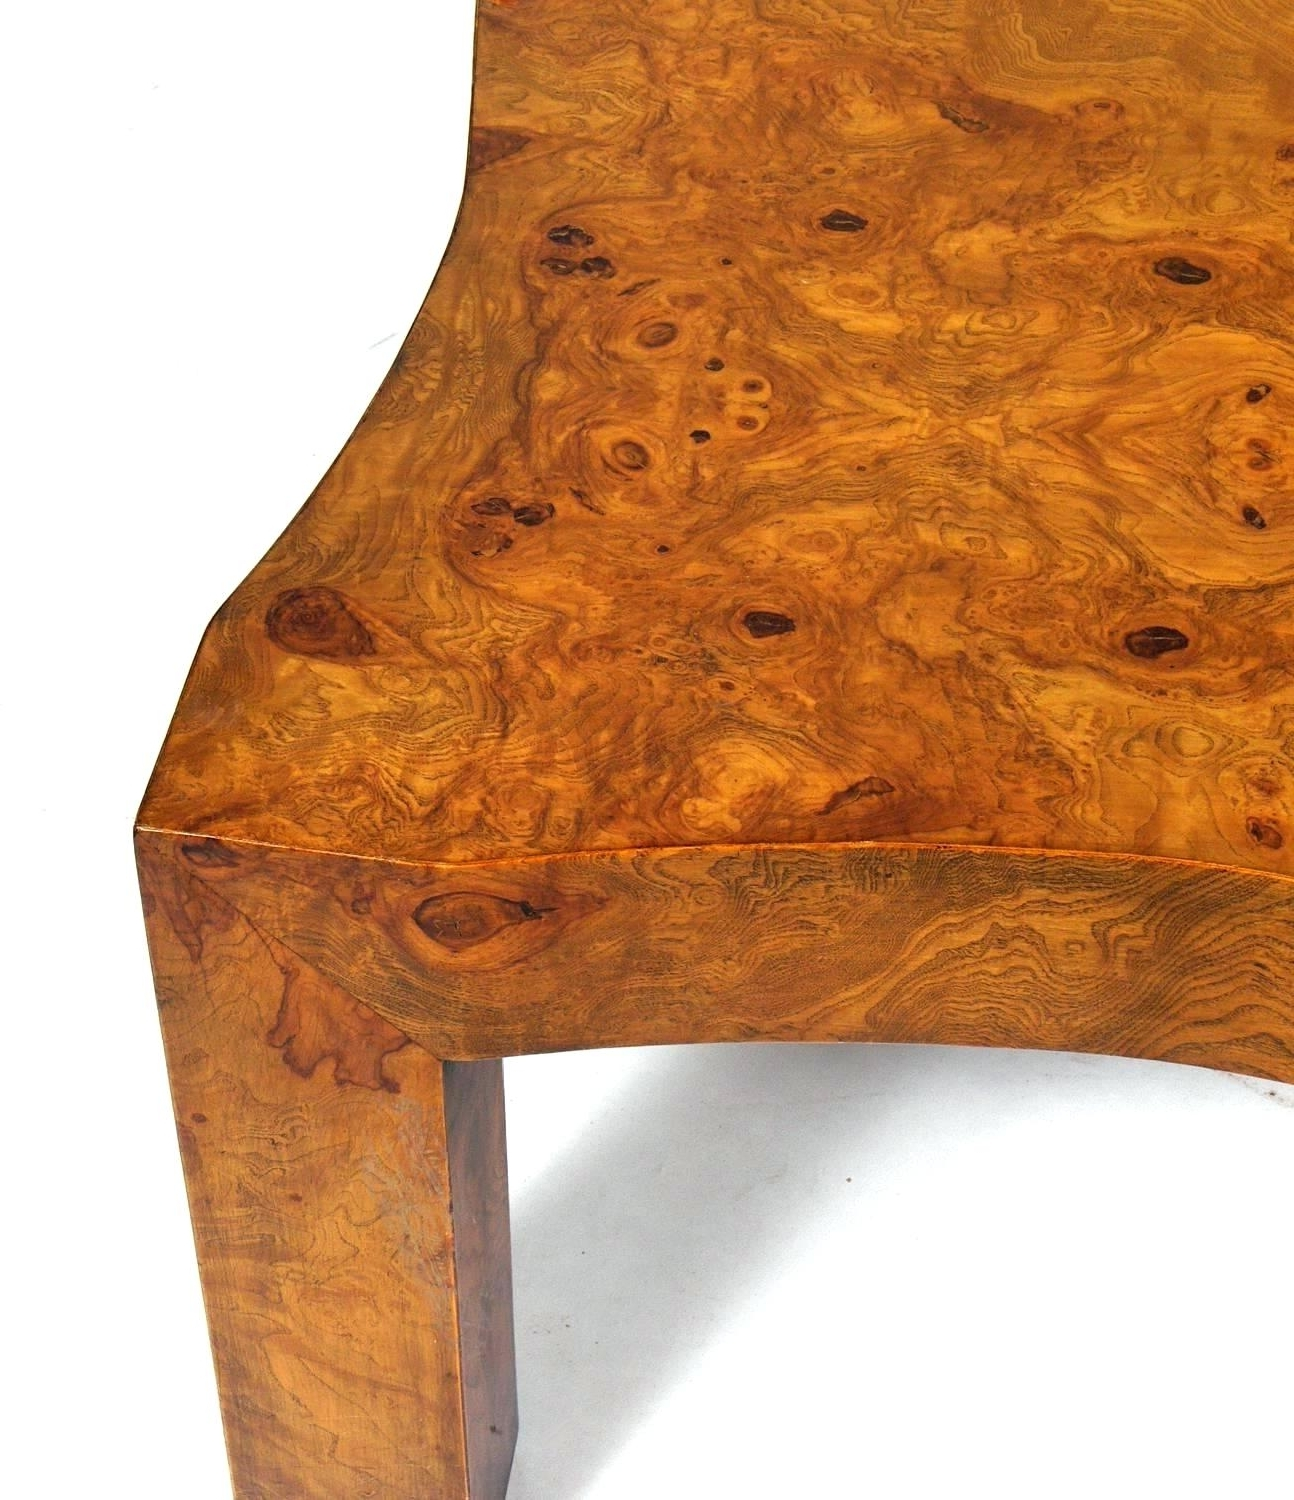 Burled Wood Coffee Table Wisteria Oslo Burl Wood Veneer Collection Intended For Widely Used Oslo Burl Wood Veneer Coffee Tables (View 8 of 20)